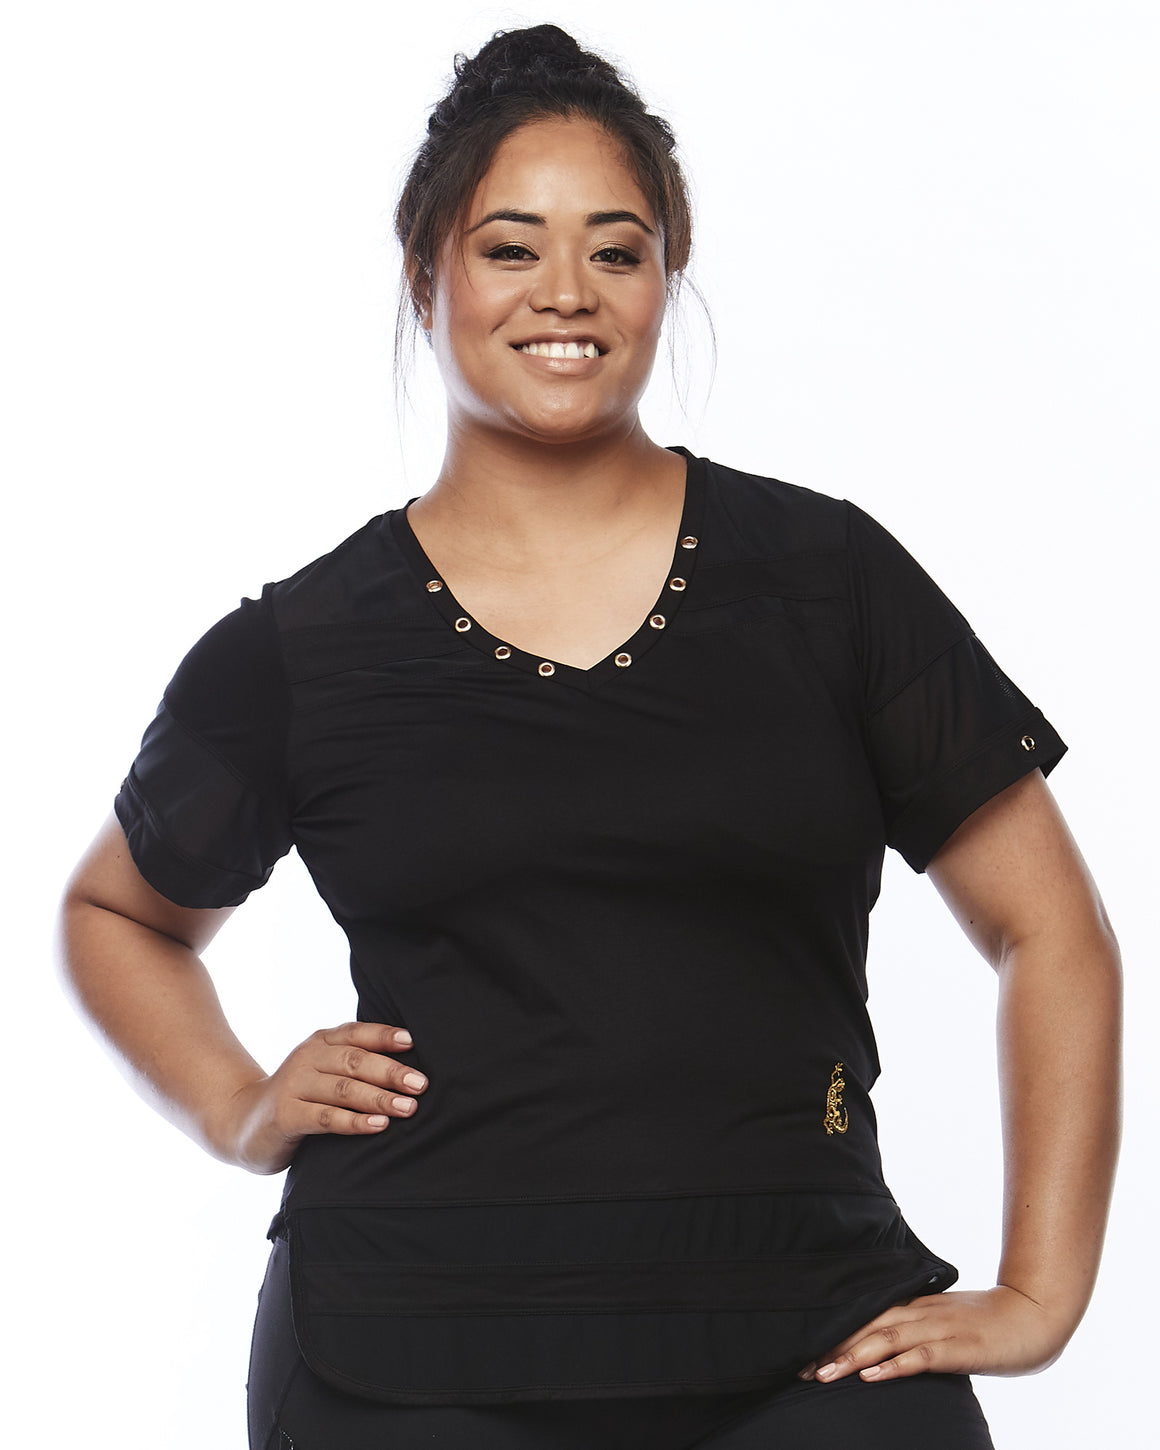 Serene Short Sleeve Sports Shirt by Lowanna Australia - Plus Size Sportswear